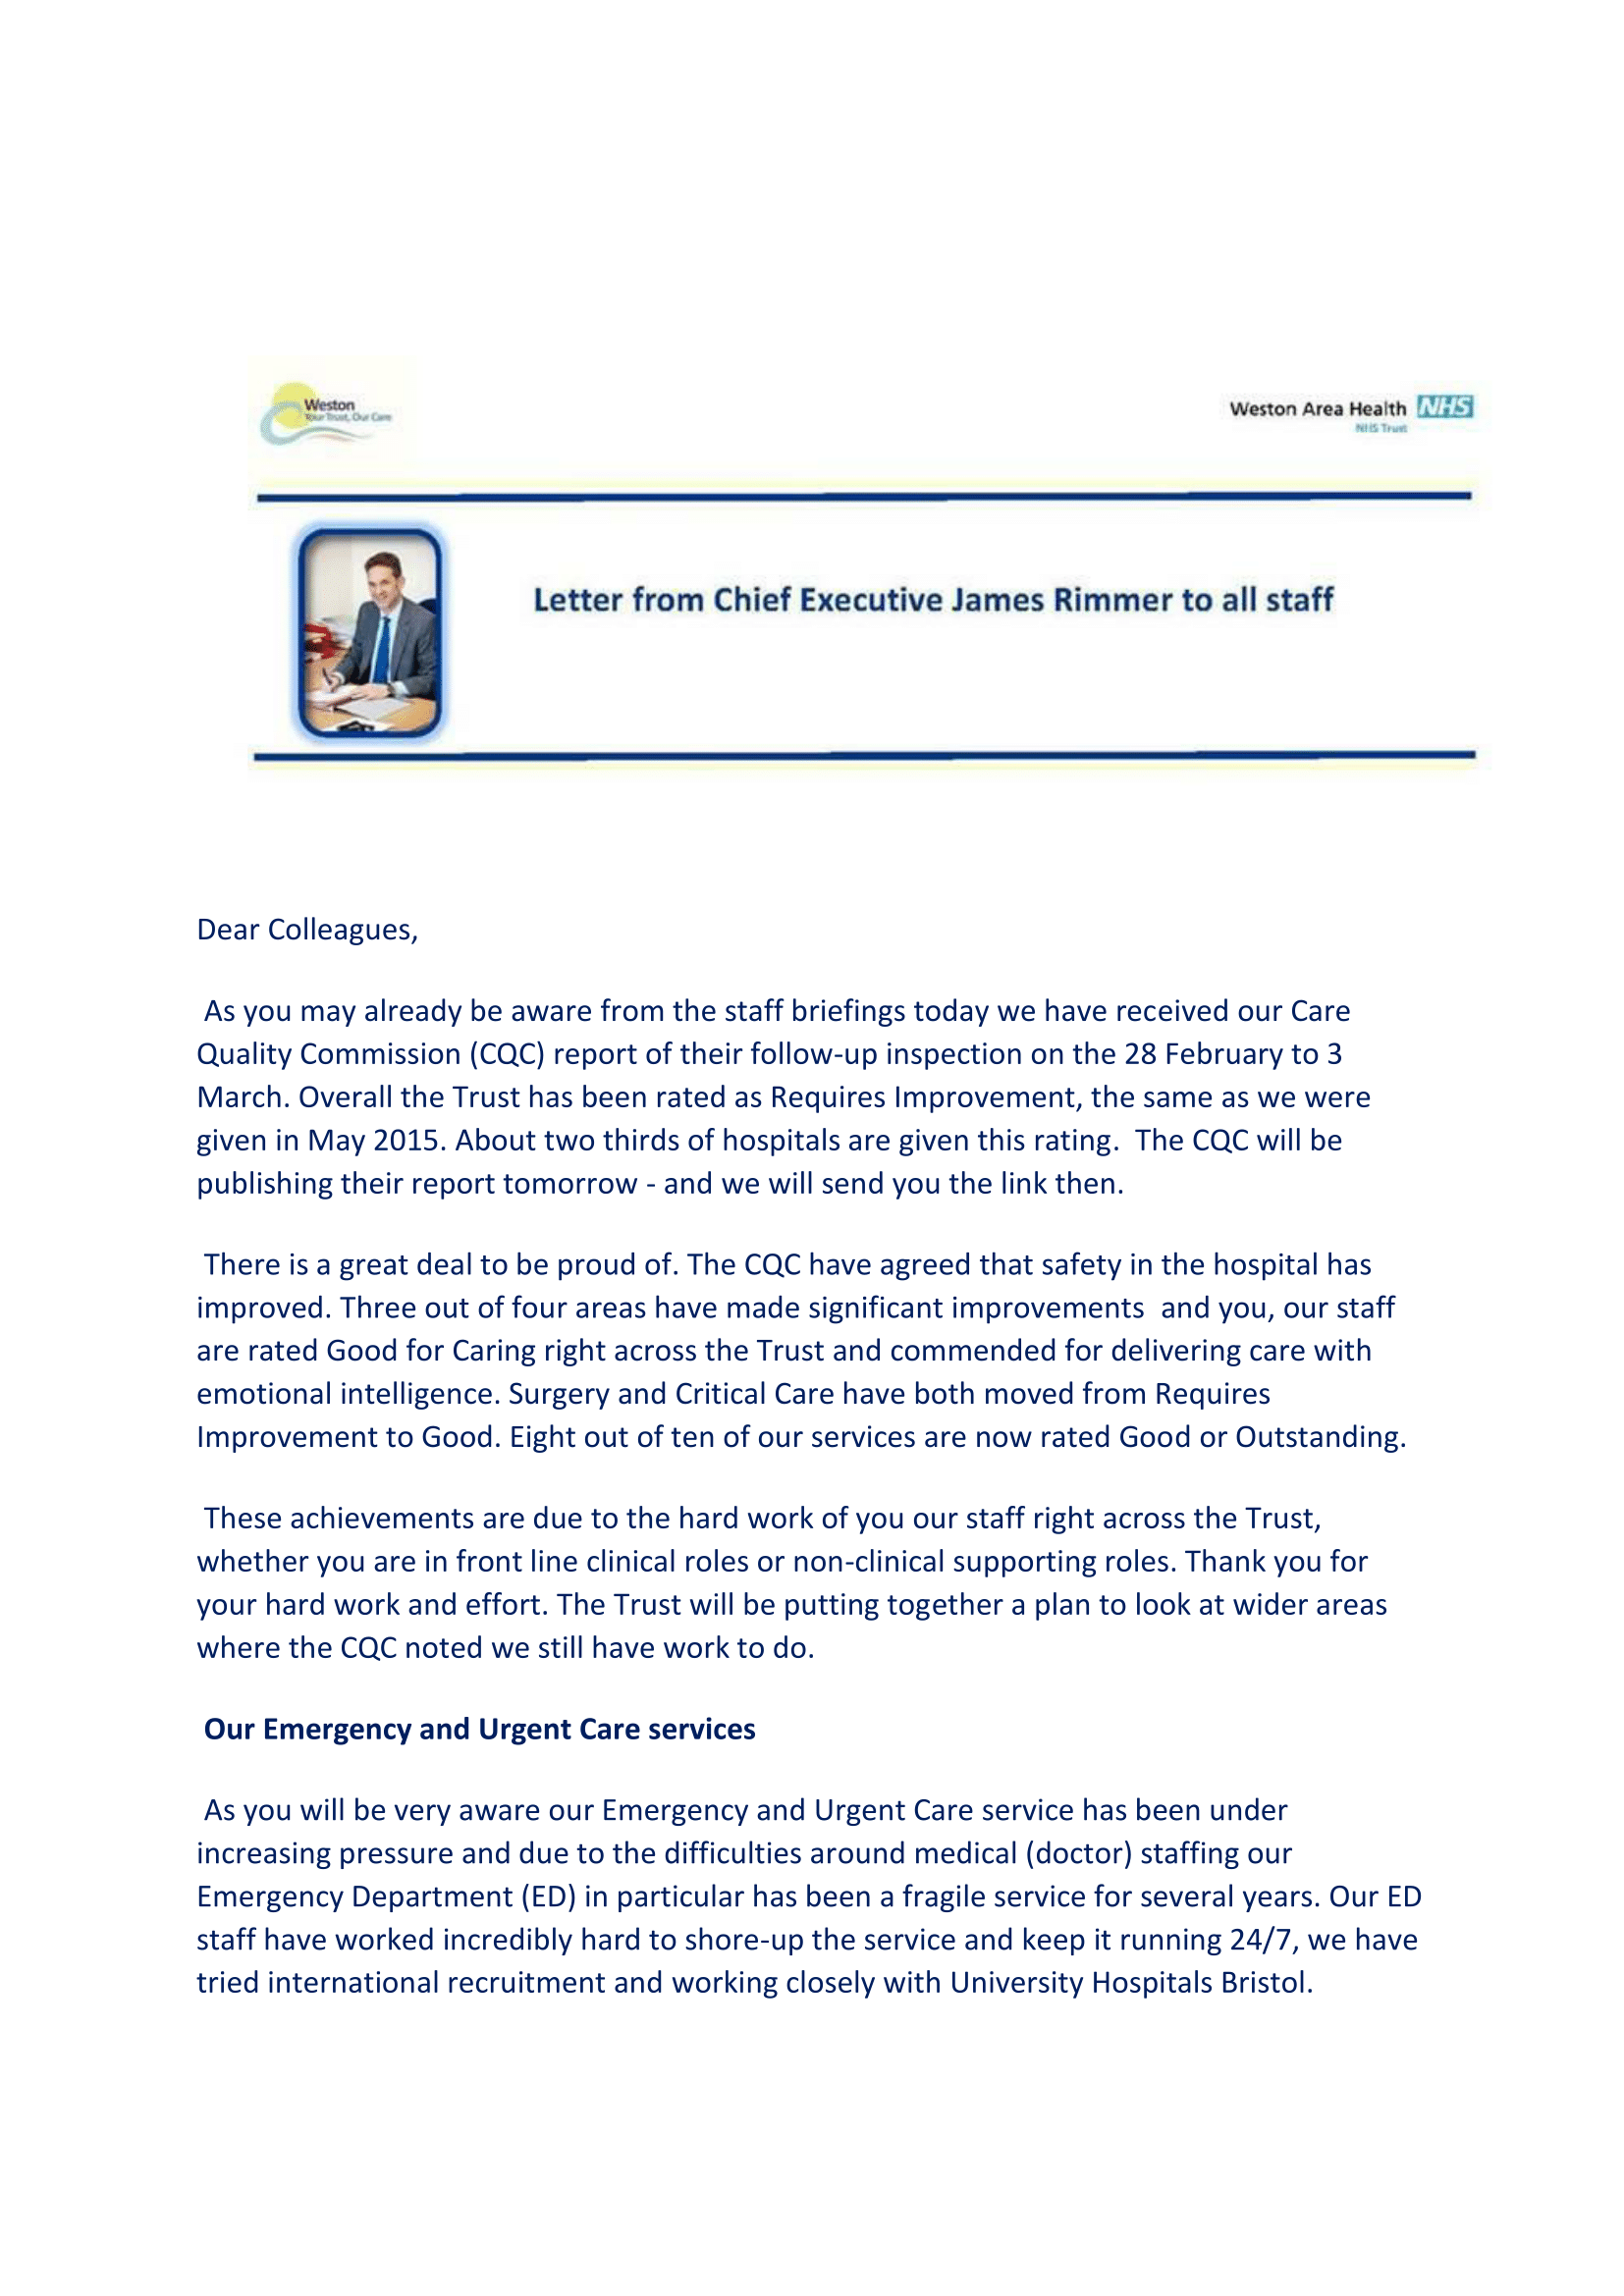 20170613_Accident_and_Emergency_closure_letter-1.png